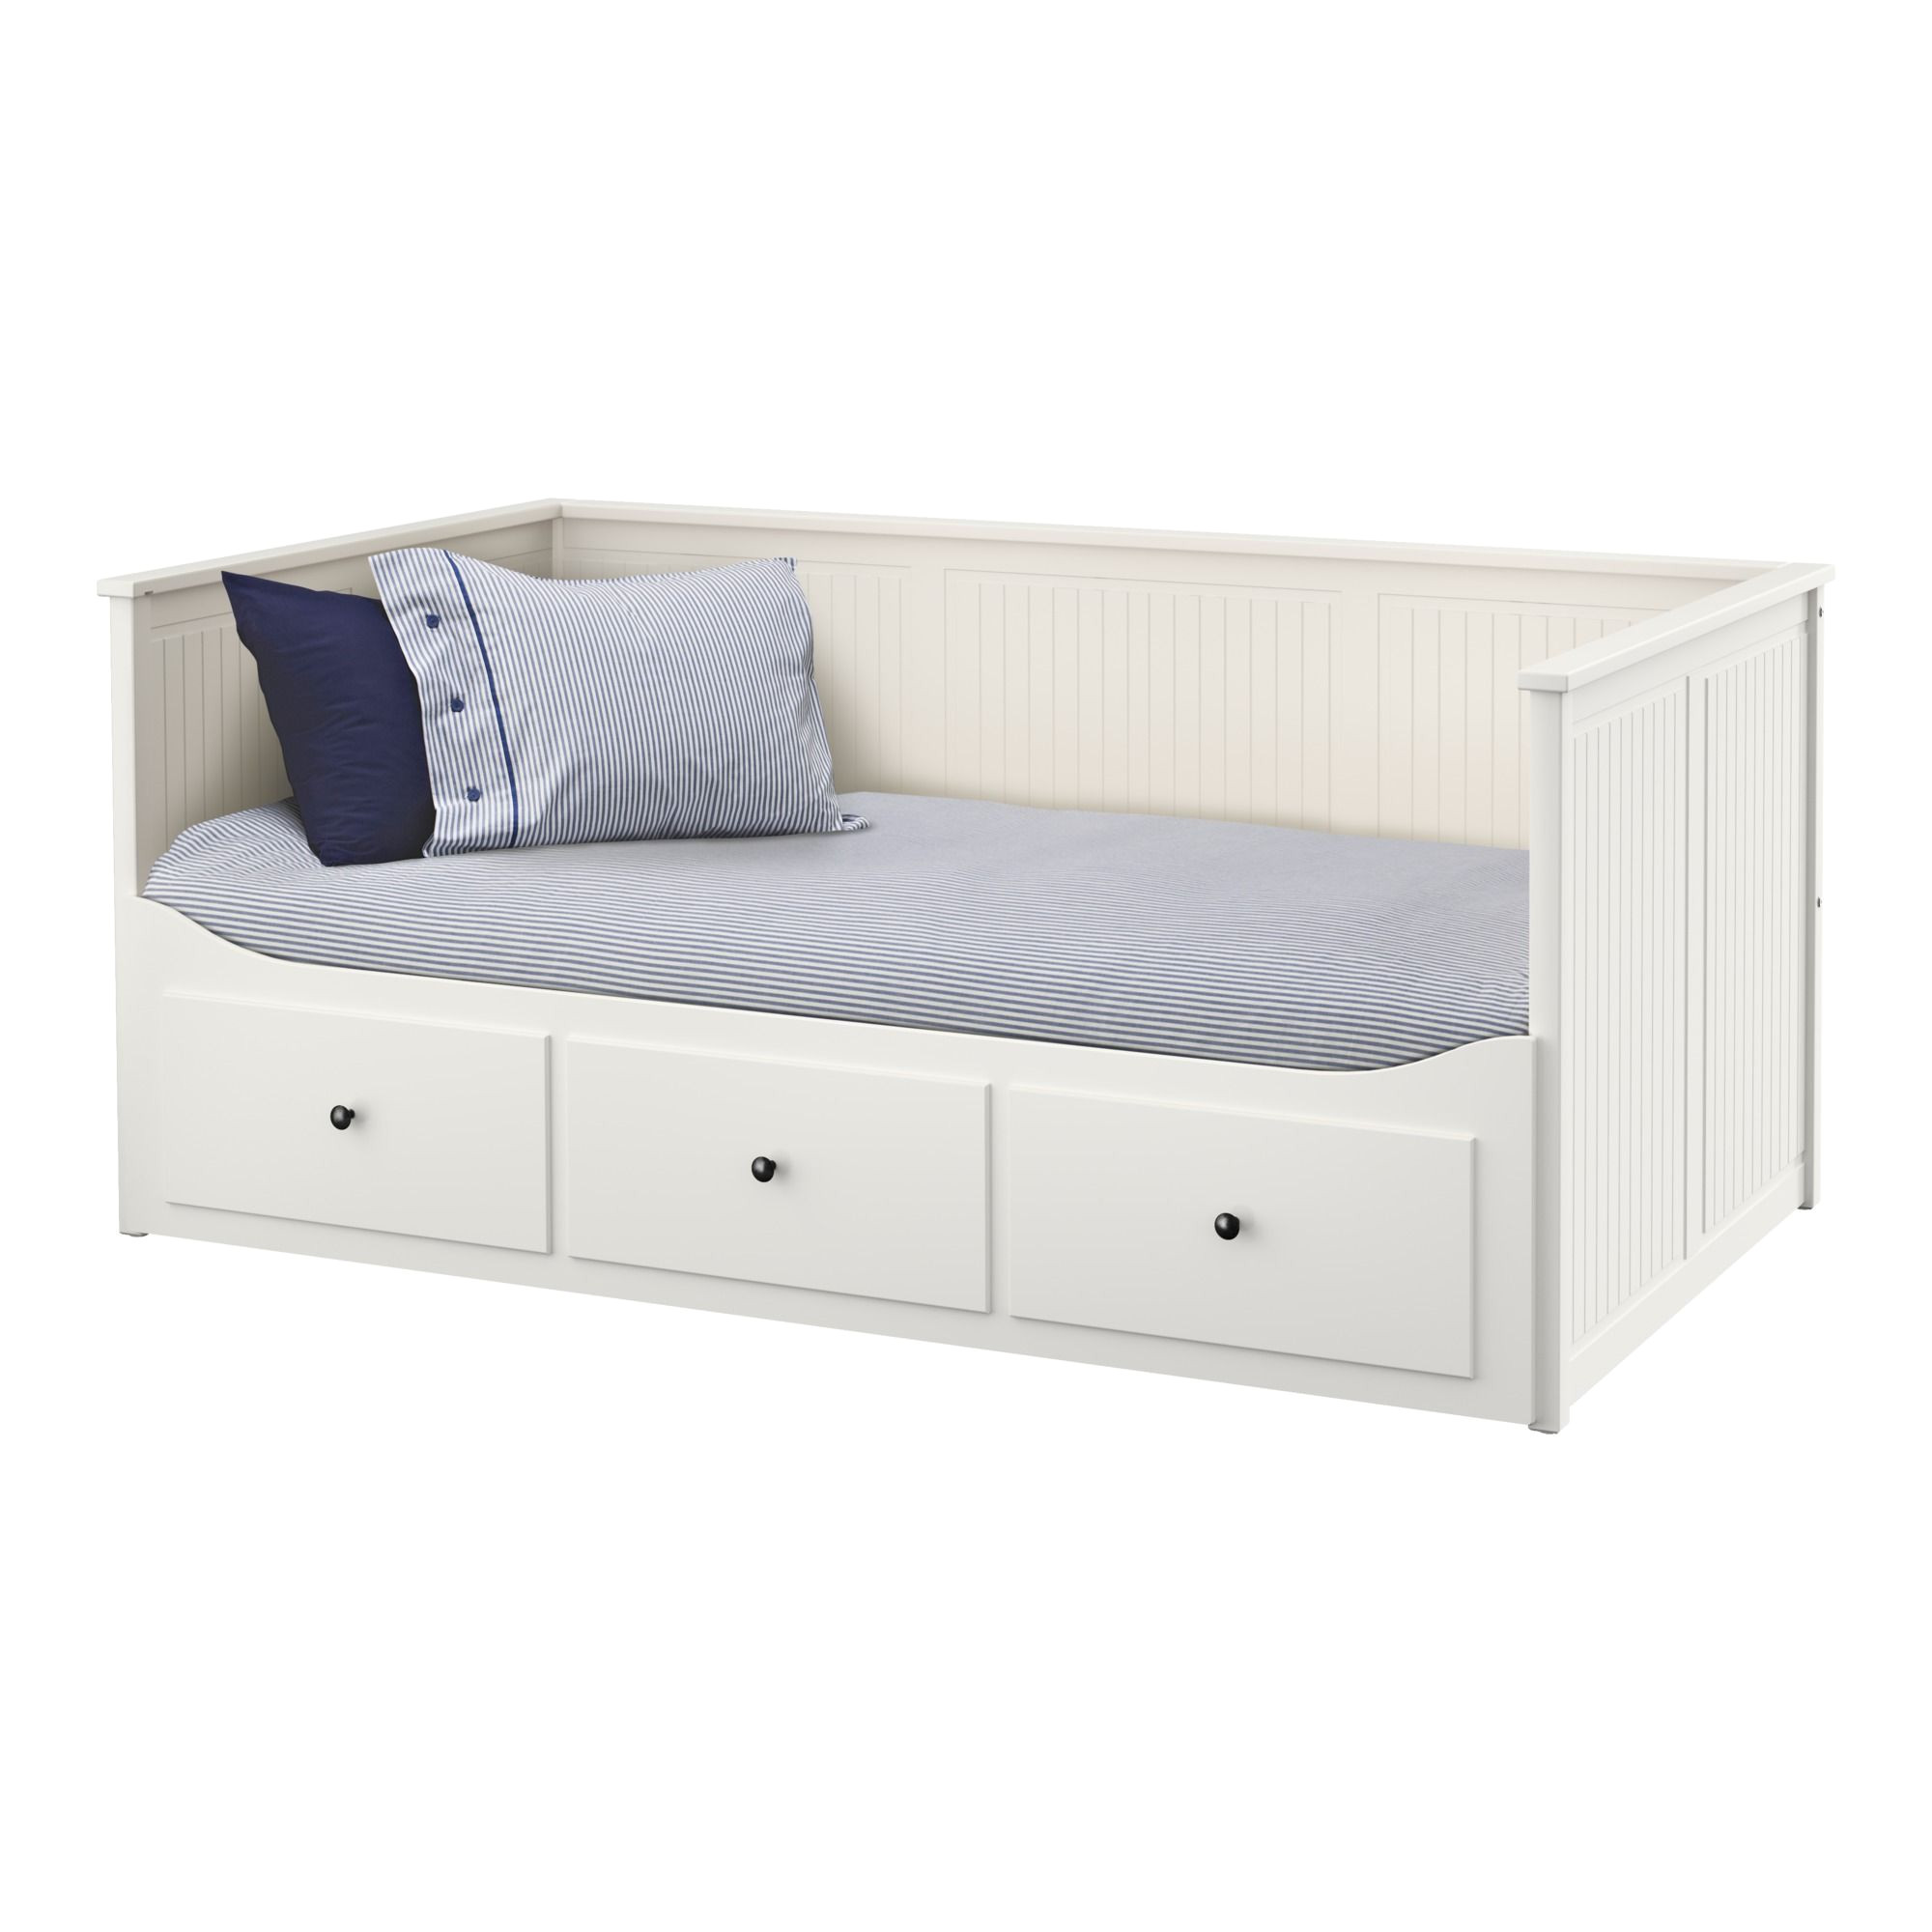 ikea hemnes daybed frame with 3 drawers four functions sofa single bed double bed and storage solution